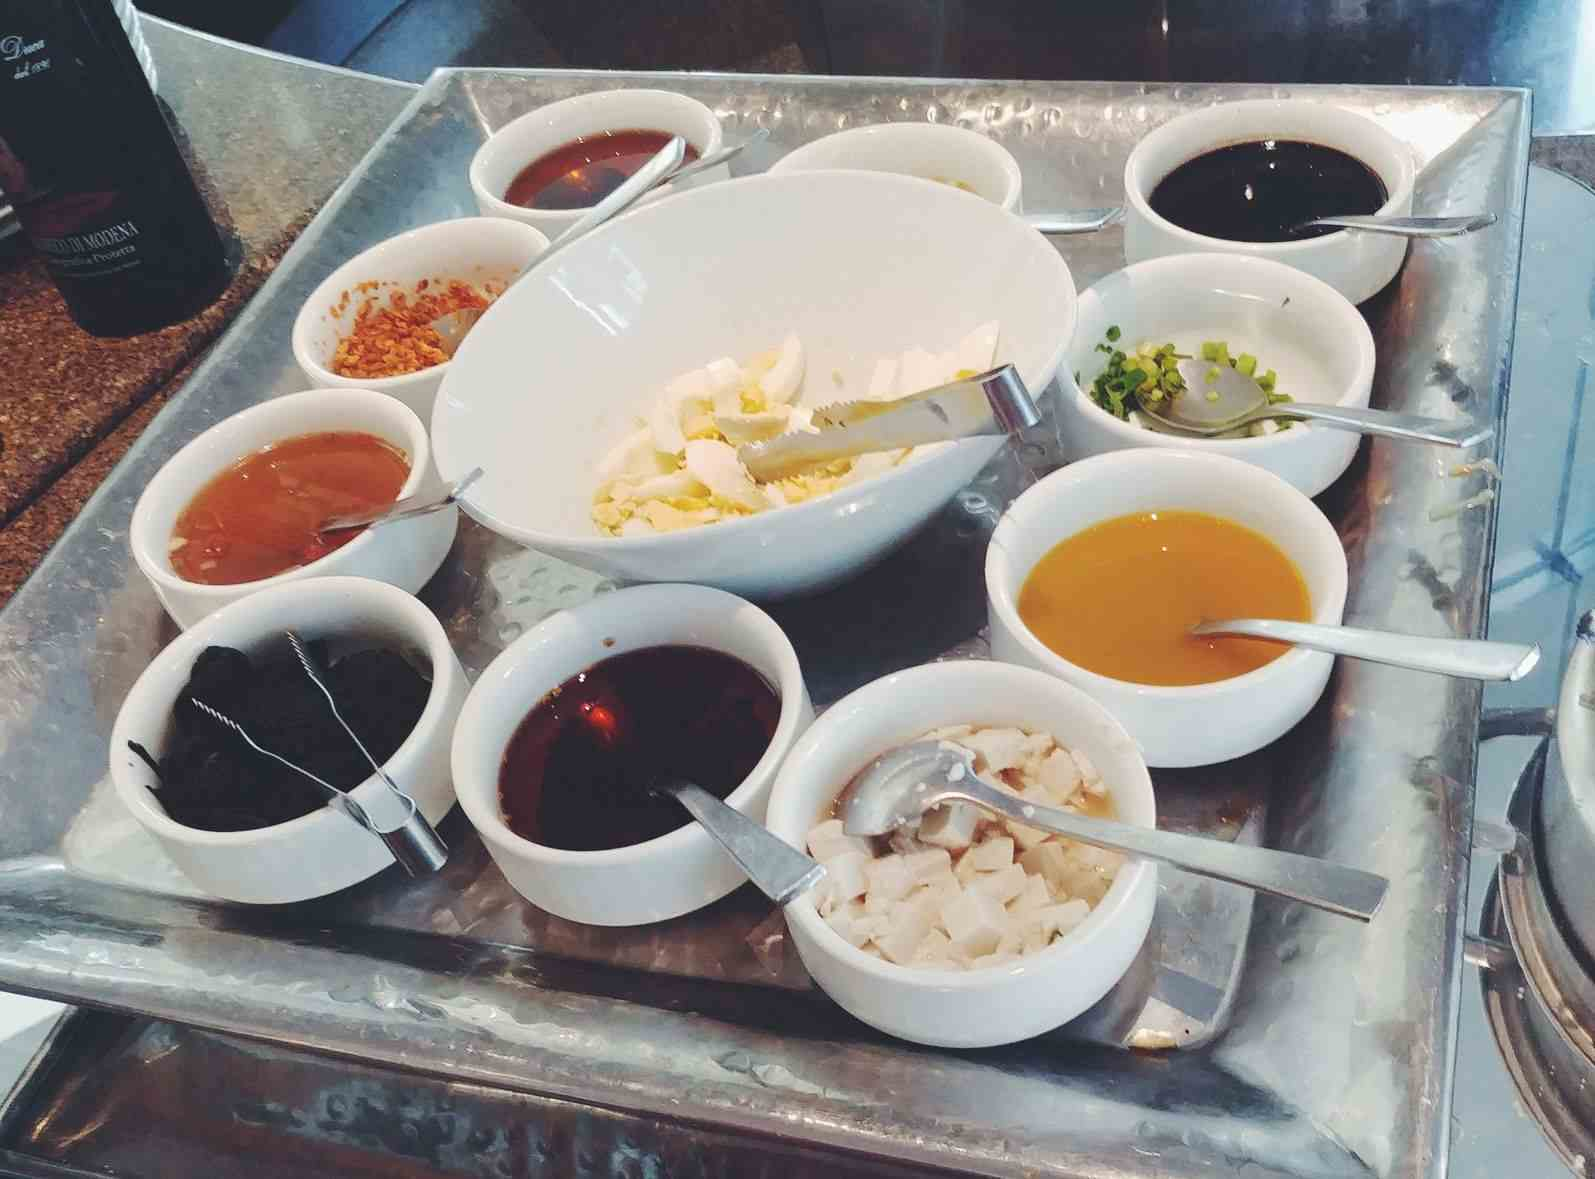 Condiments at Acaci Cafe in Acacia Hotel